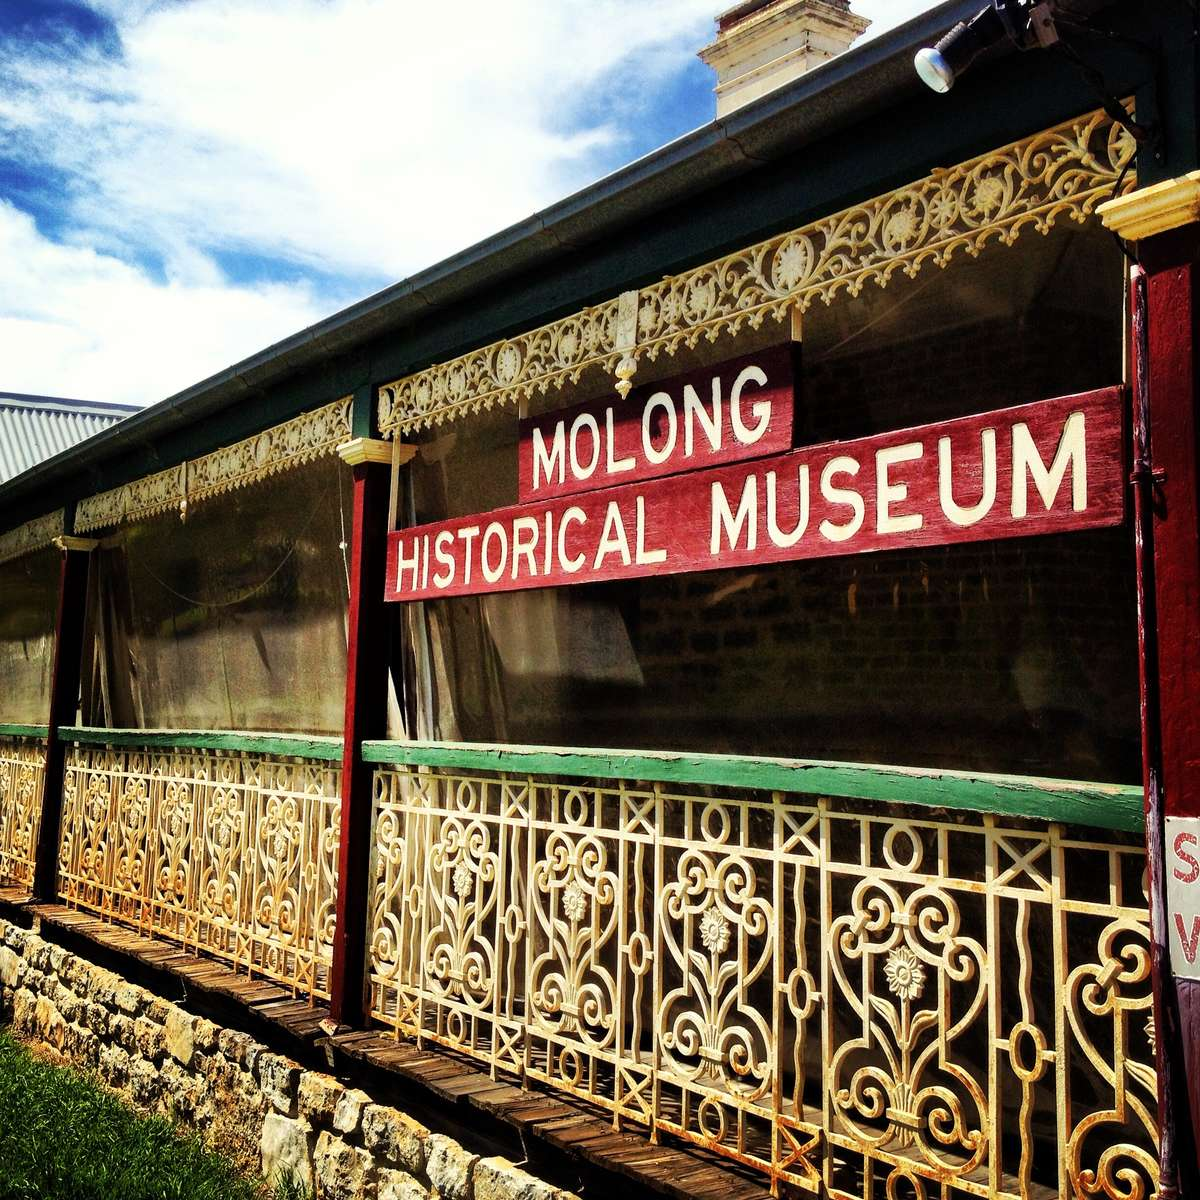 Molong Historical Museum, Molong, NSW. ANMM photo 2013